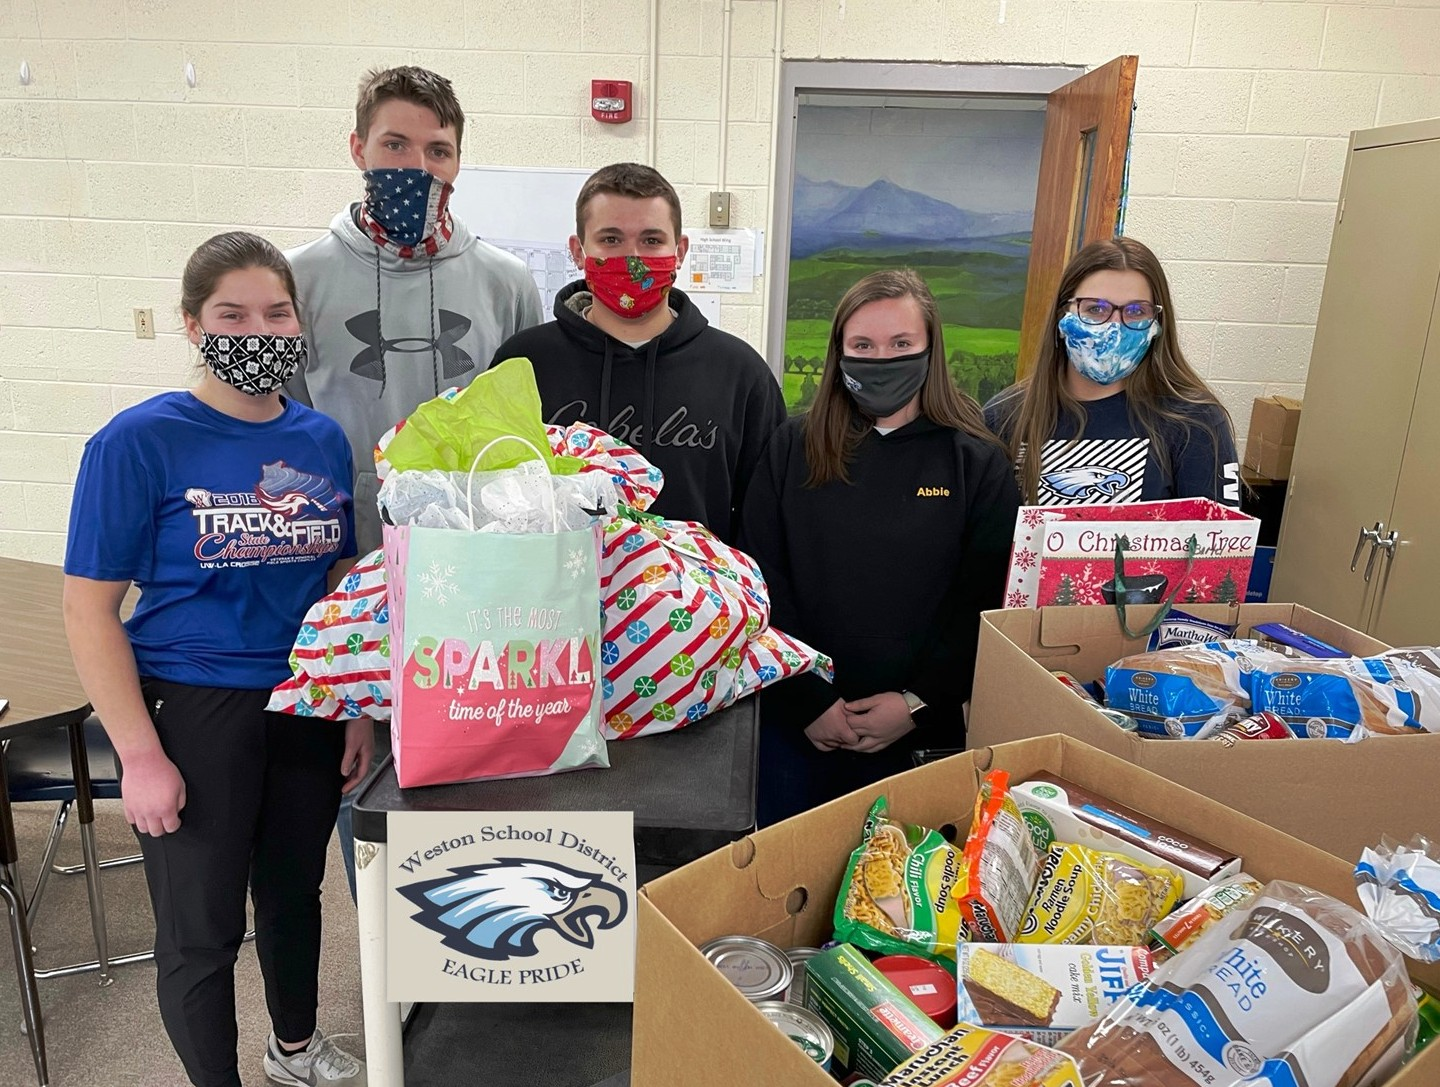 Weston's National Honor Society hosted its giving tree around Christmas. Student representatives include, from left, Ella Spencer, Hunter Schmitt, Hayden VanCoulter, Abbie Spencer and Laurissa Pickel. (Submitted photos)